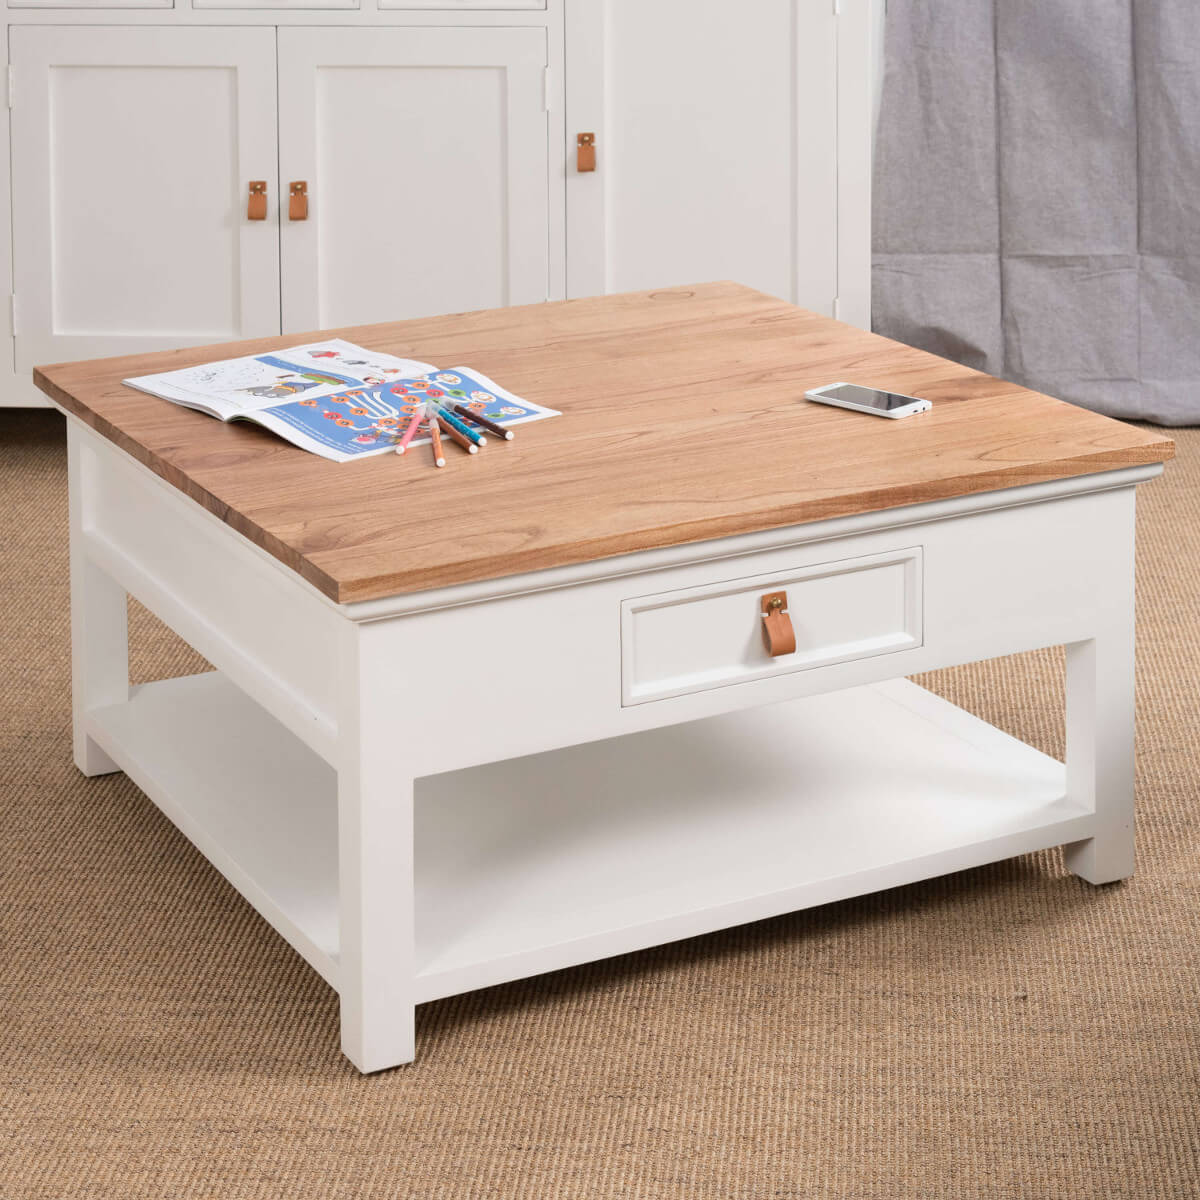 Table basse blanche table basse acajou carr e bois for Recherche table de salon